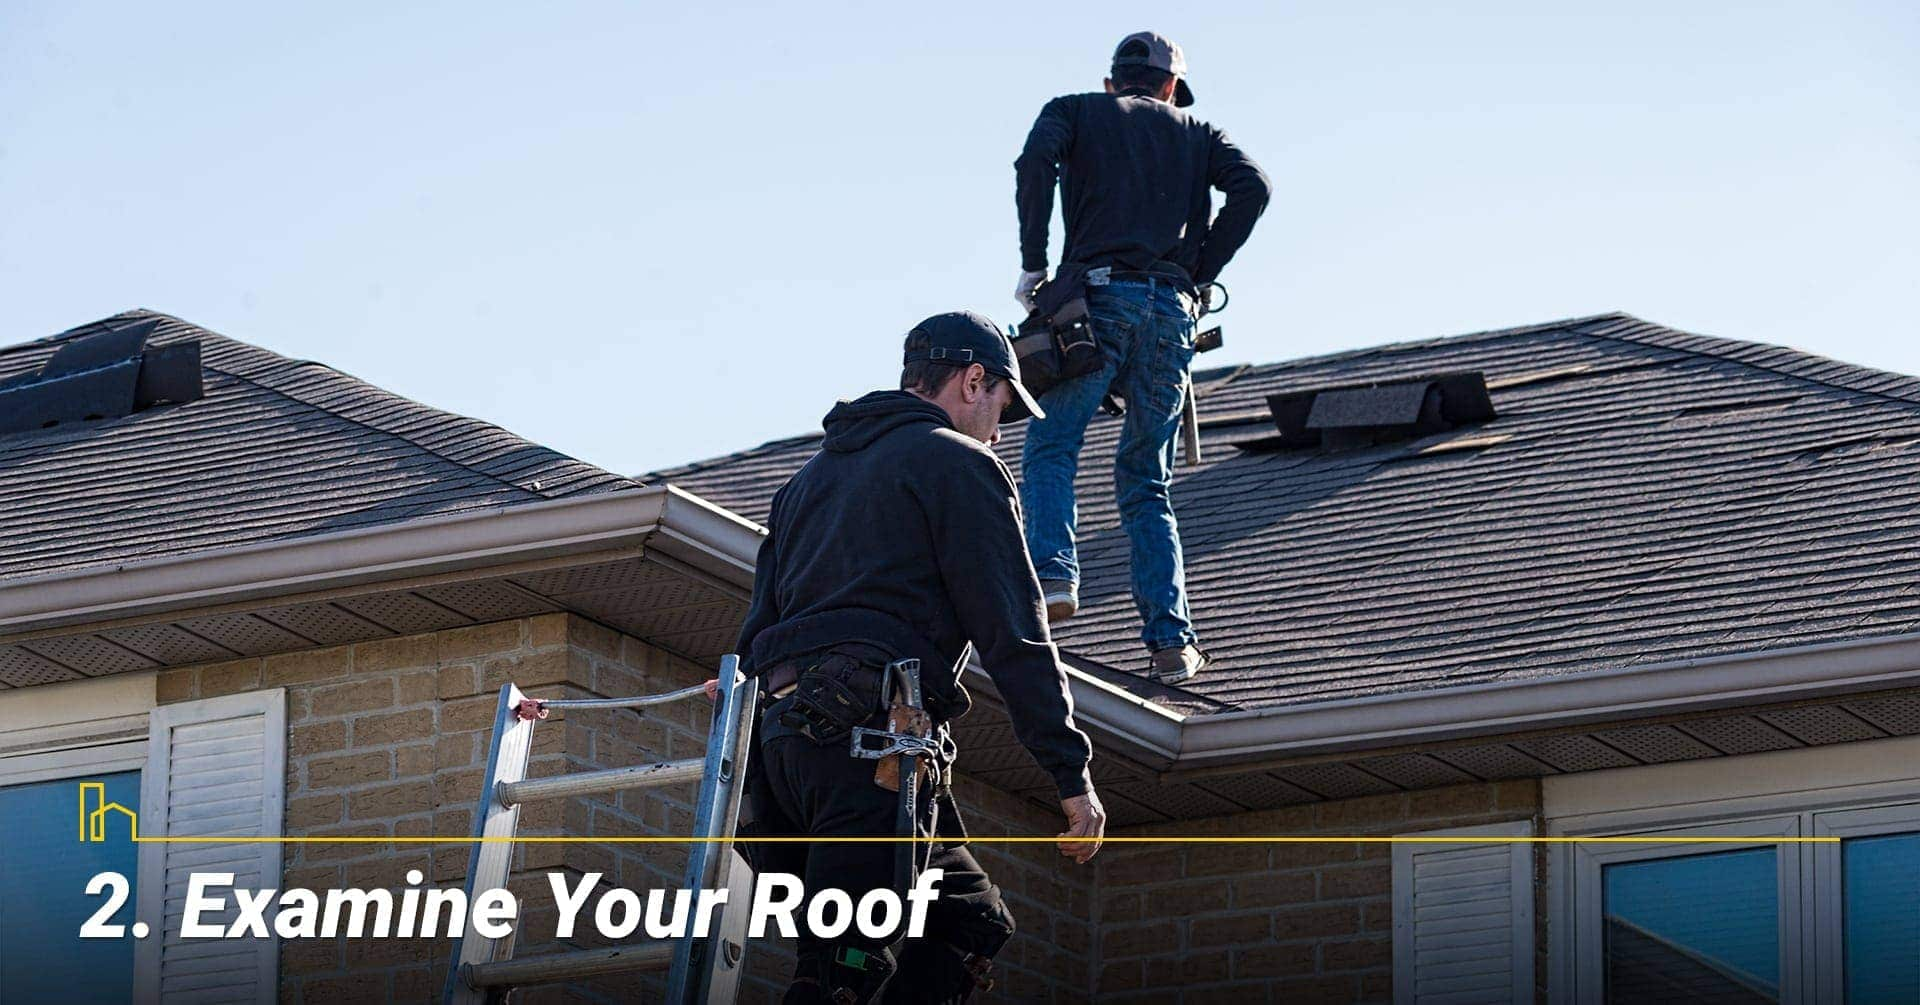 Examine Your Roof